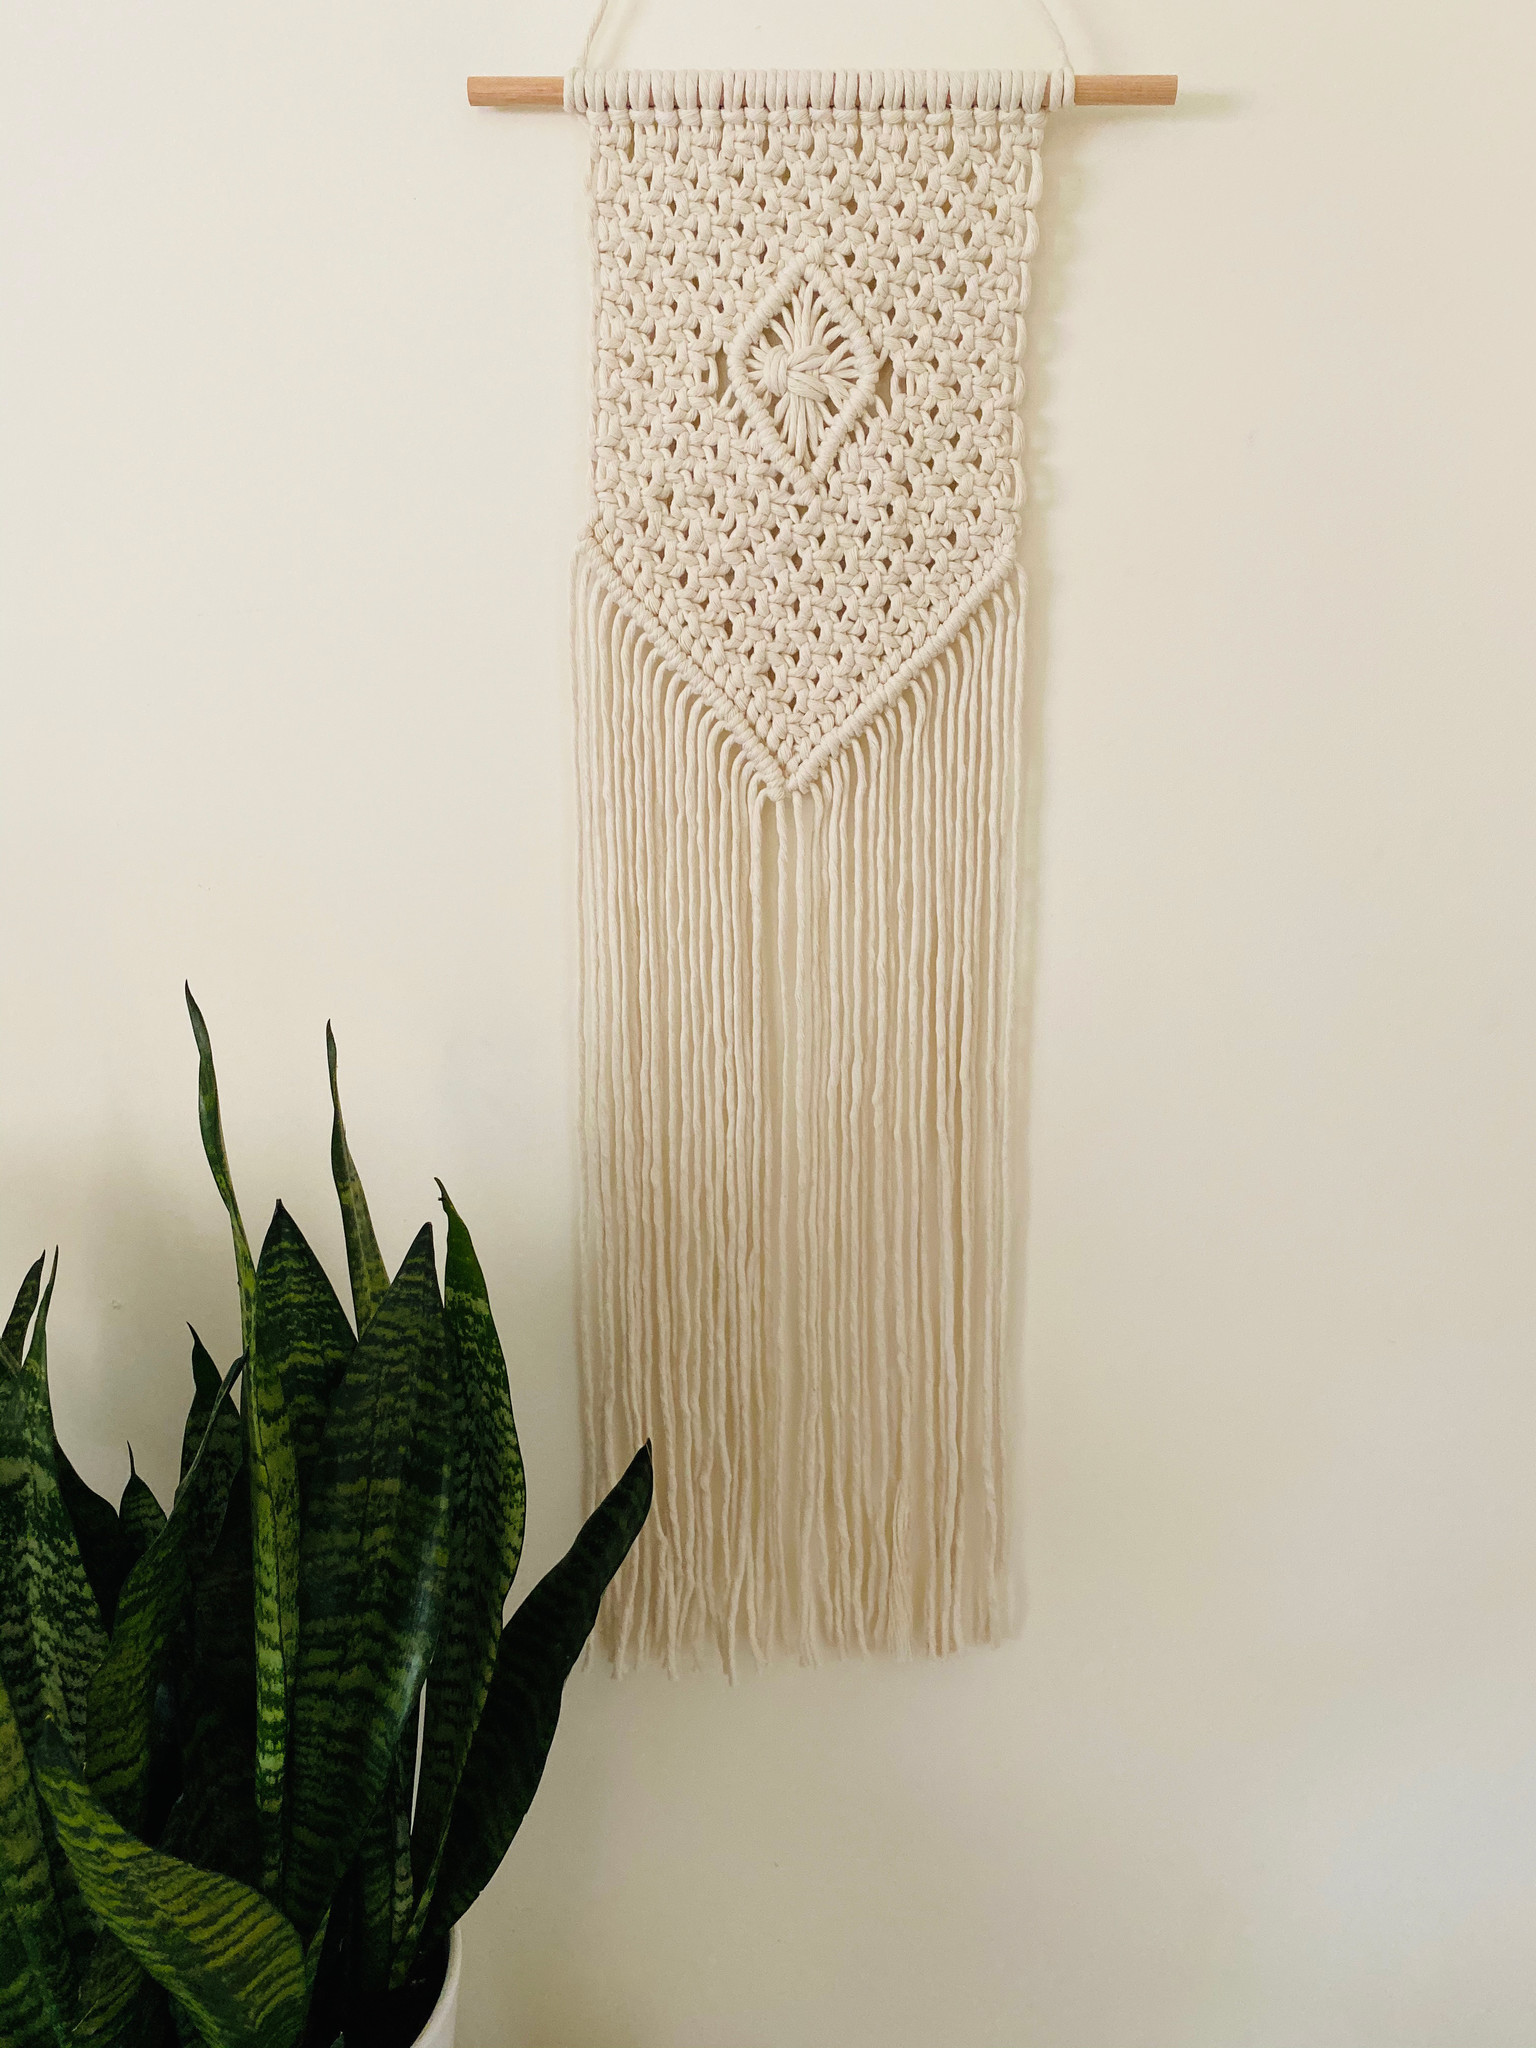 Macrame Wall Hanging For Beginners 3 21 10am 1pm A Good Yarn